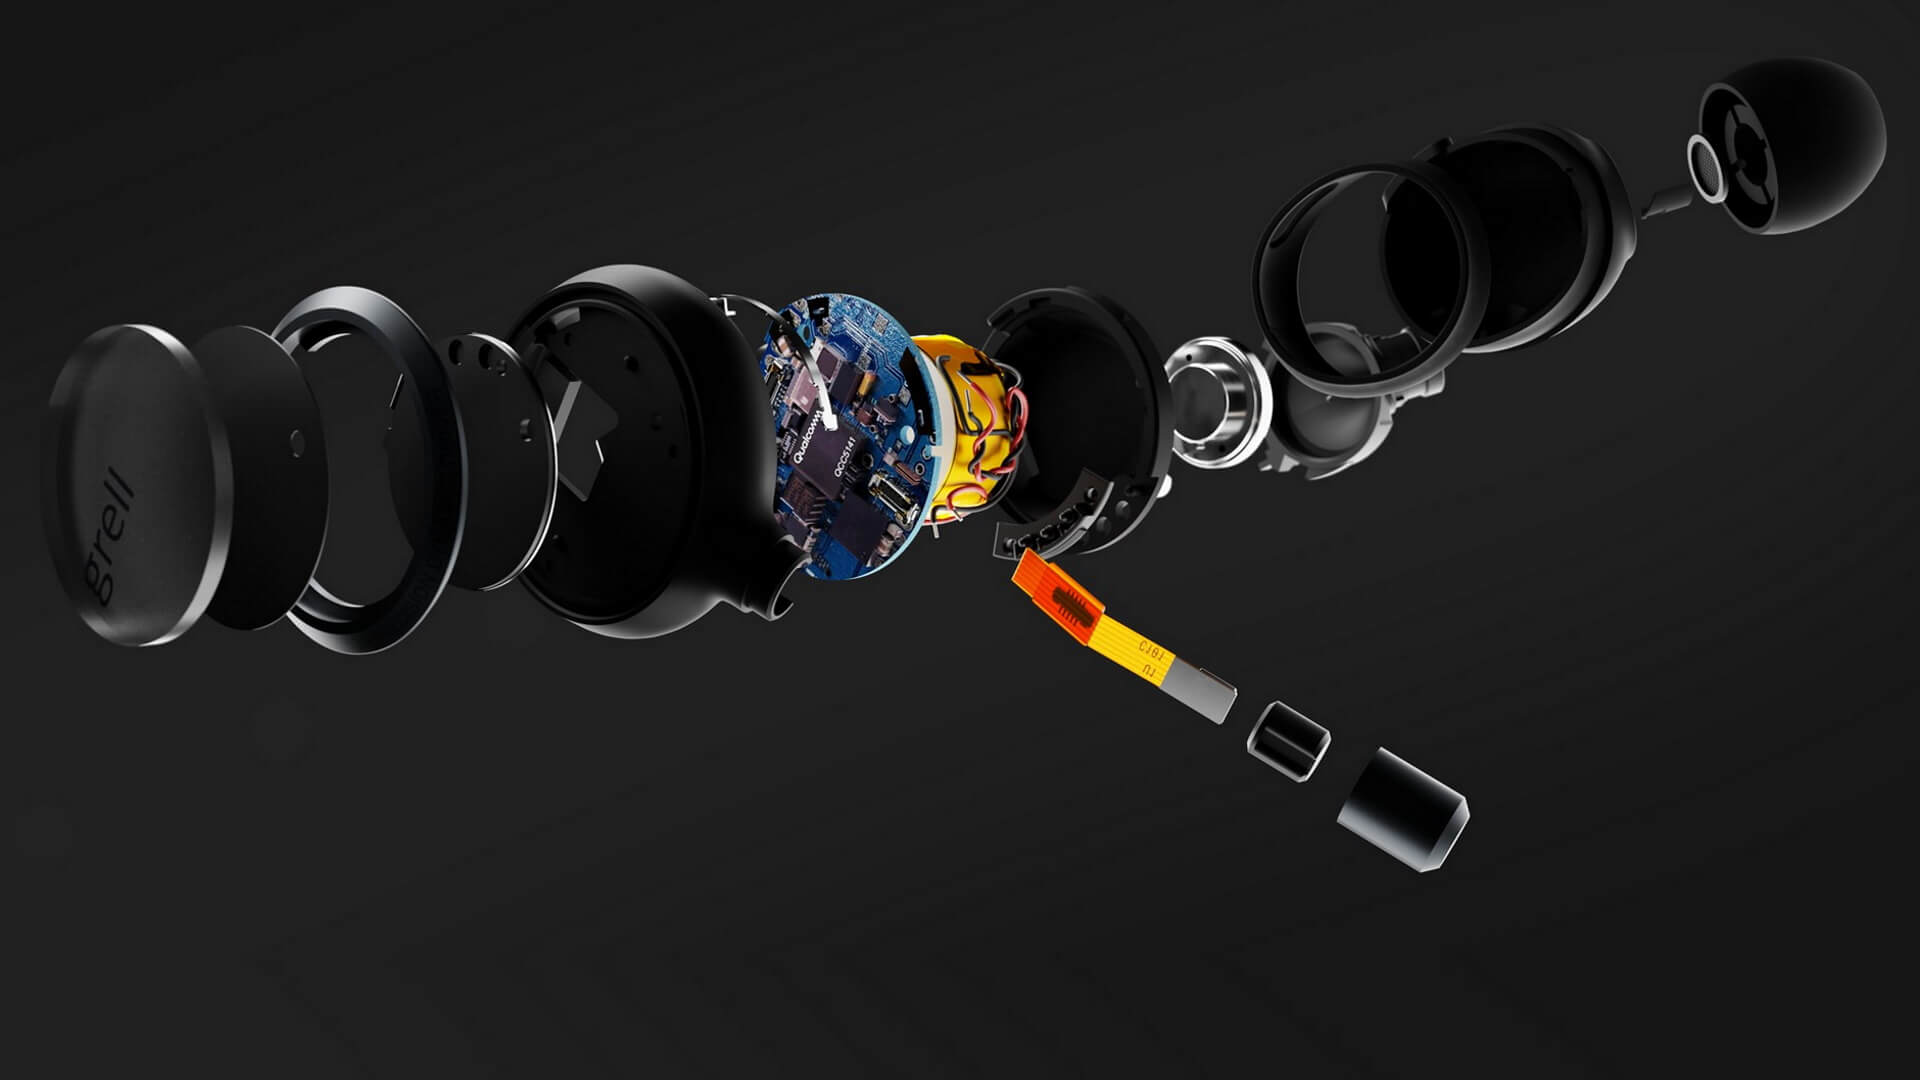 grell audio tws1 earbuds